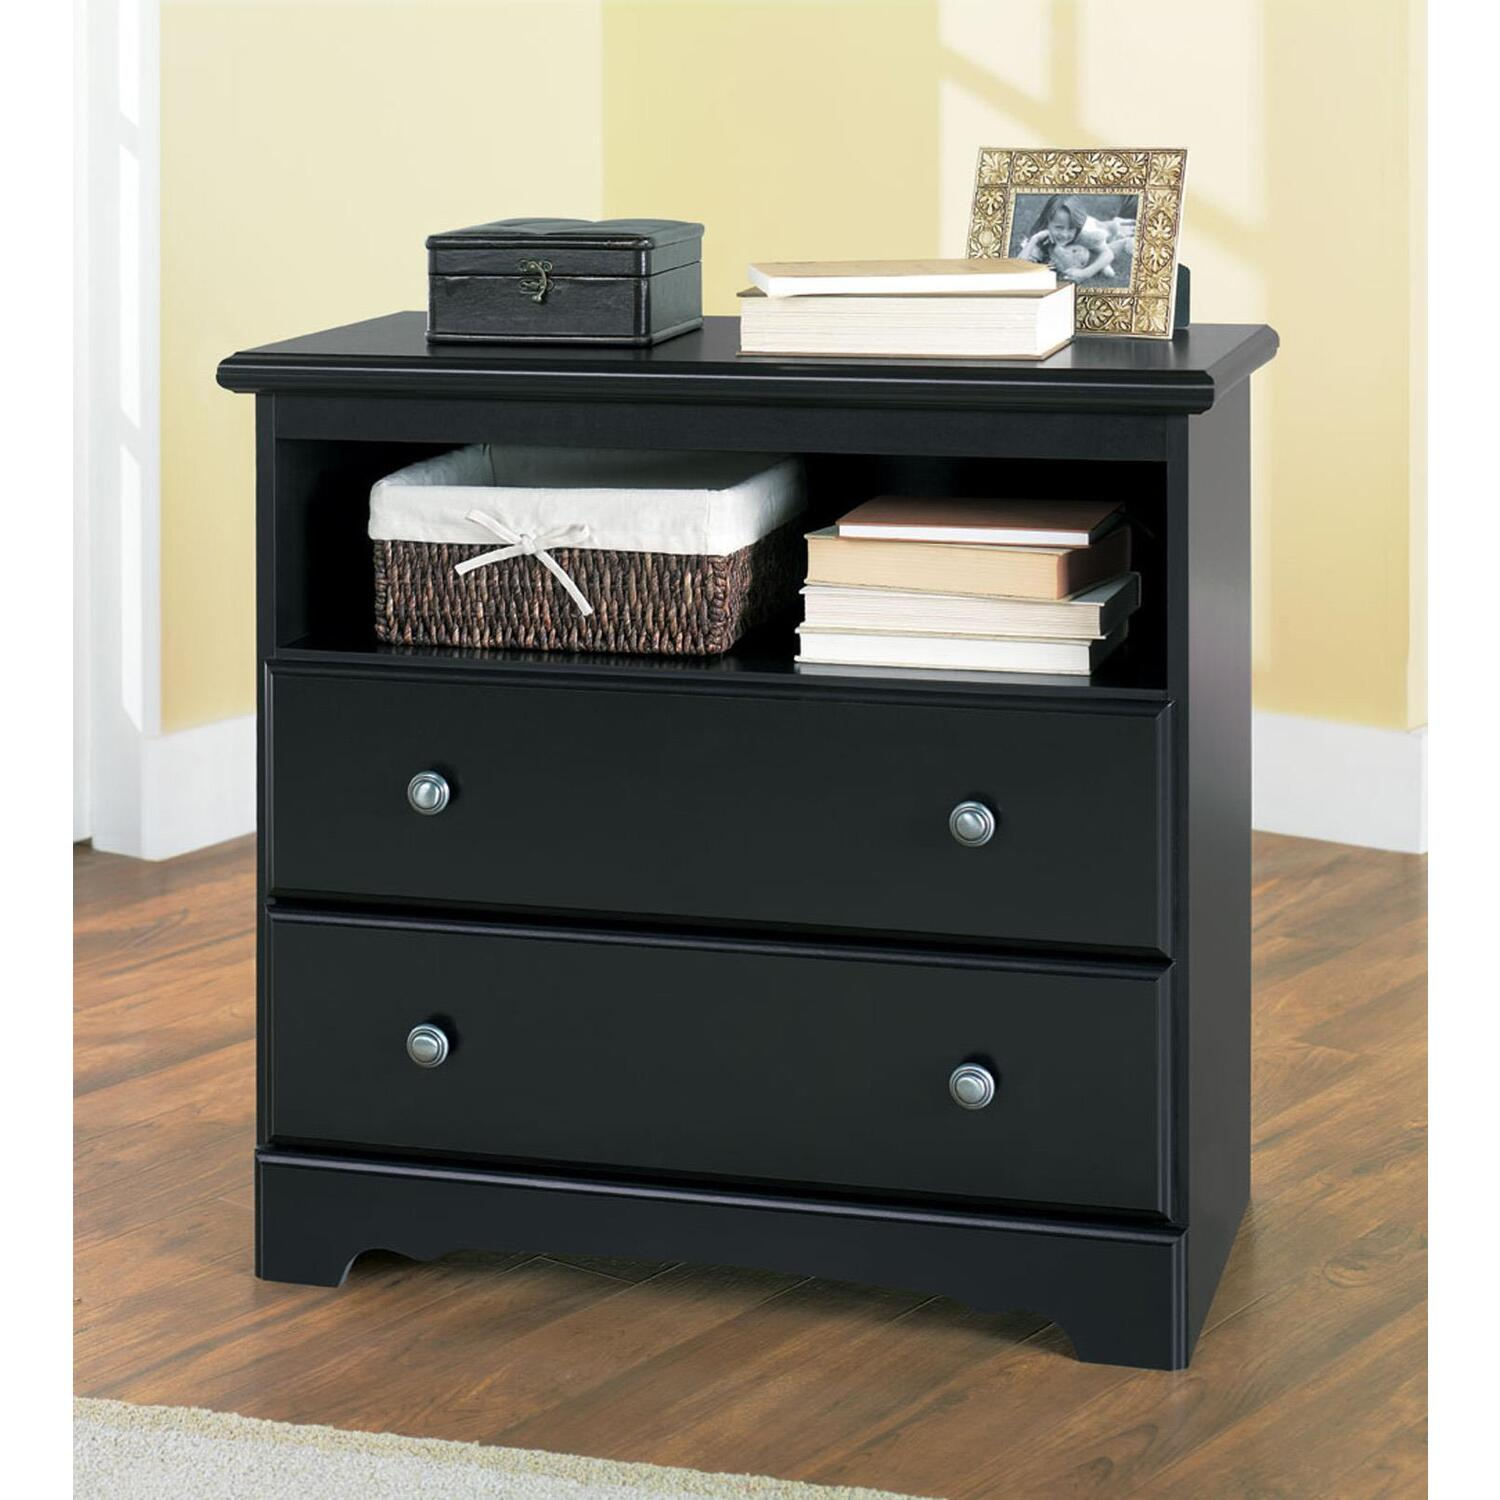 #927C39 Lane Furniture 2 Drawer Hall Chest In Black By OJ Commerce F138316 $  with 1445x1600 px of Best Hall Chests With Drawers 16001445 image @ avoidforclosure.info